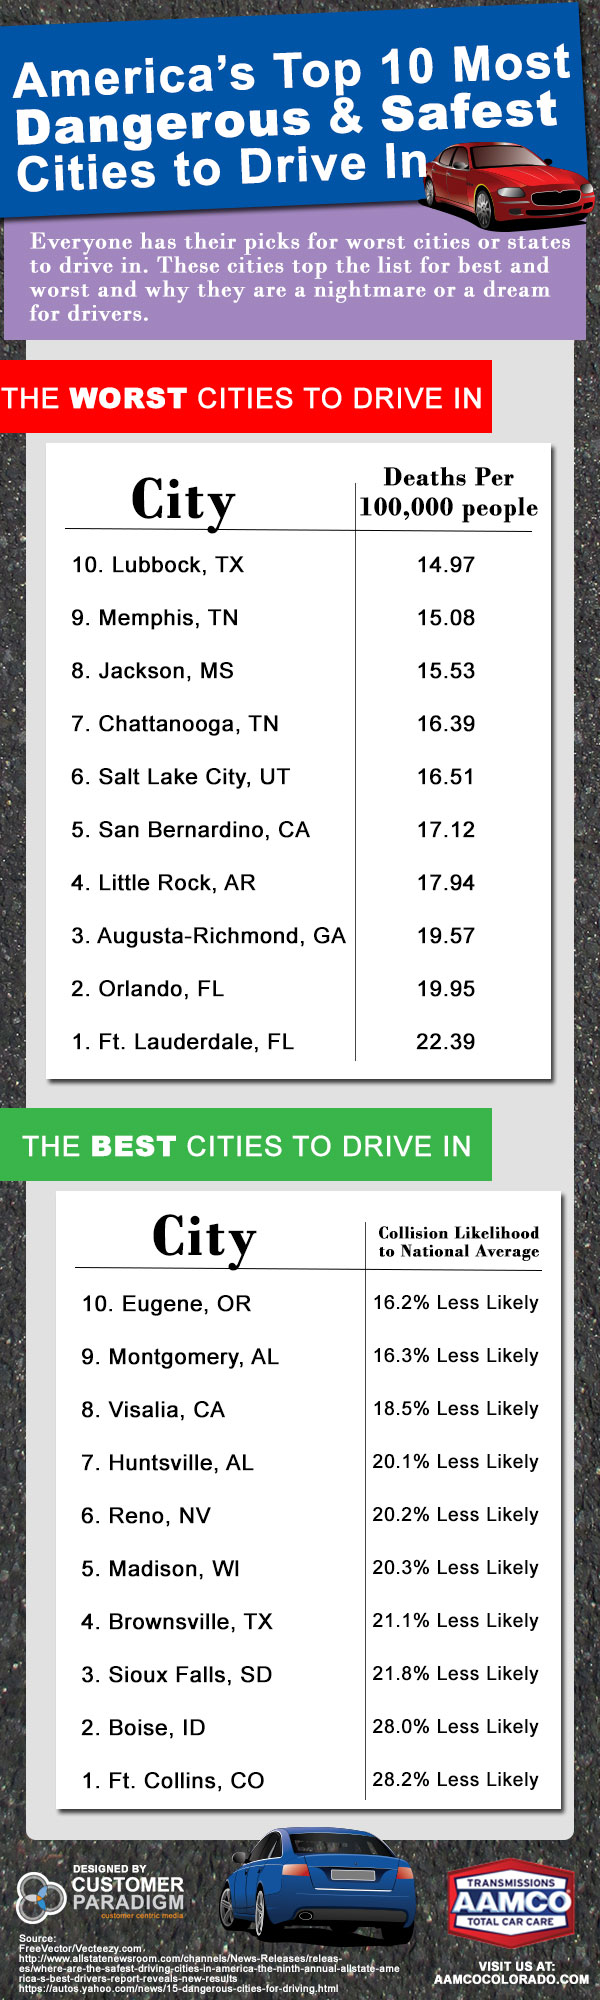 America's Top 10 Most Dangerous & Safest Cities to Drive In Infographic